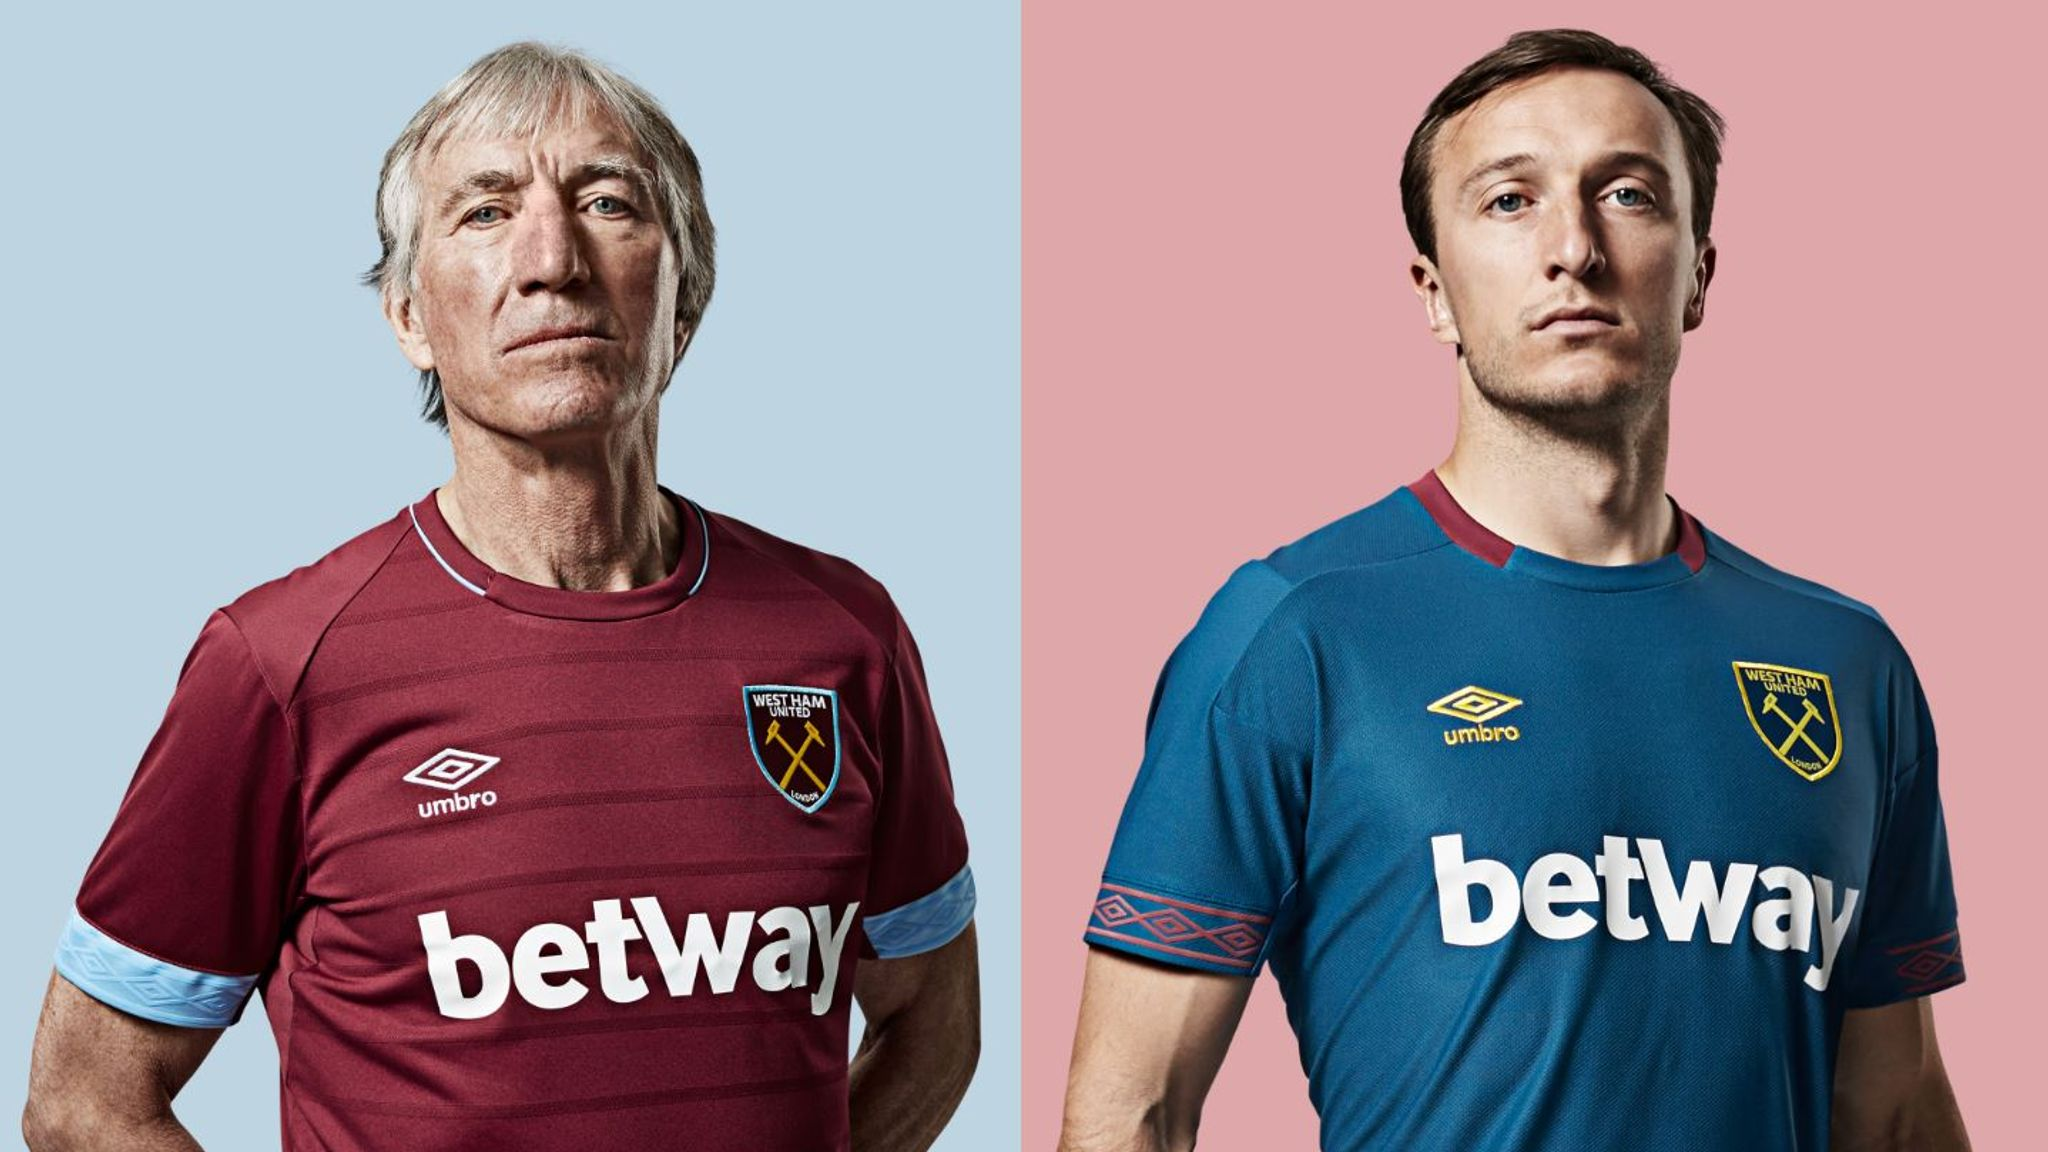 New football kits: Premier League strips for the 2018/19 season